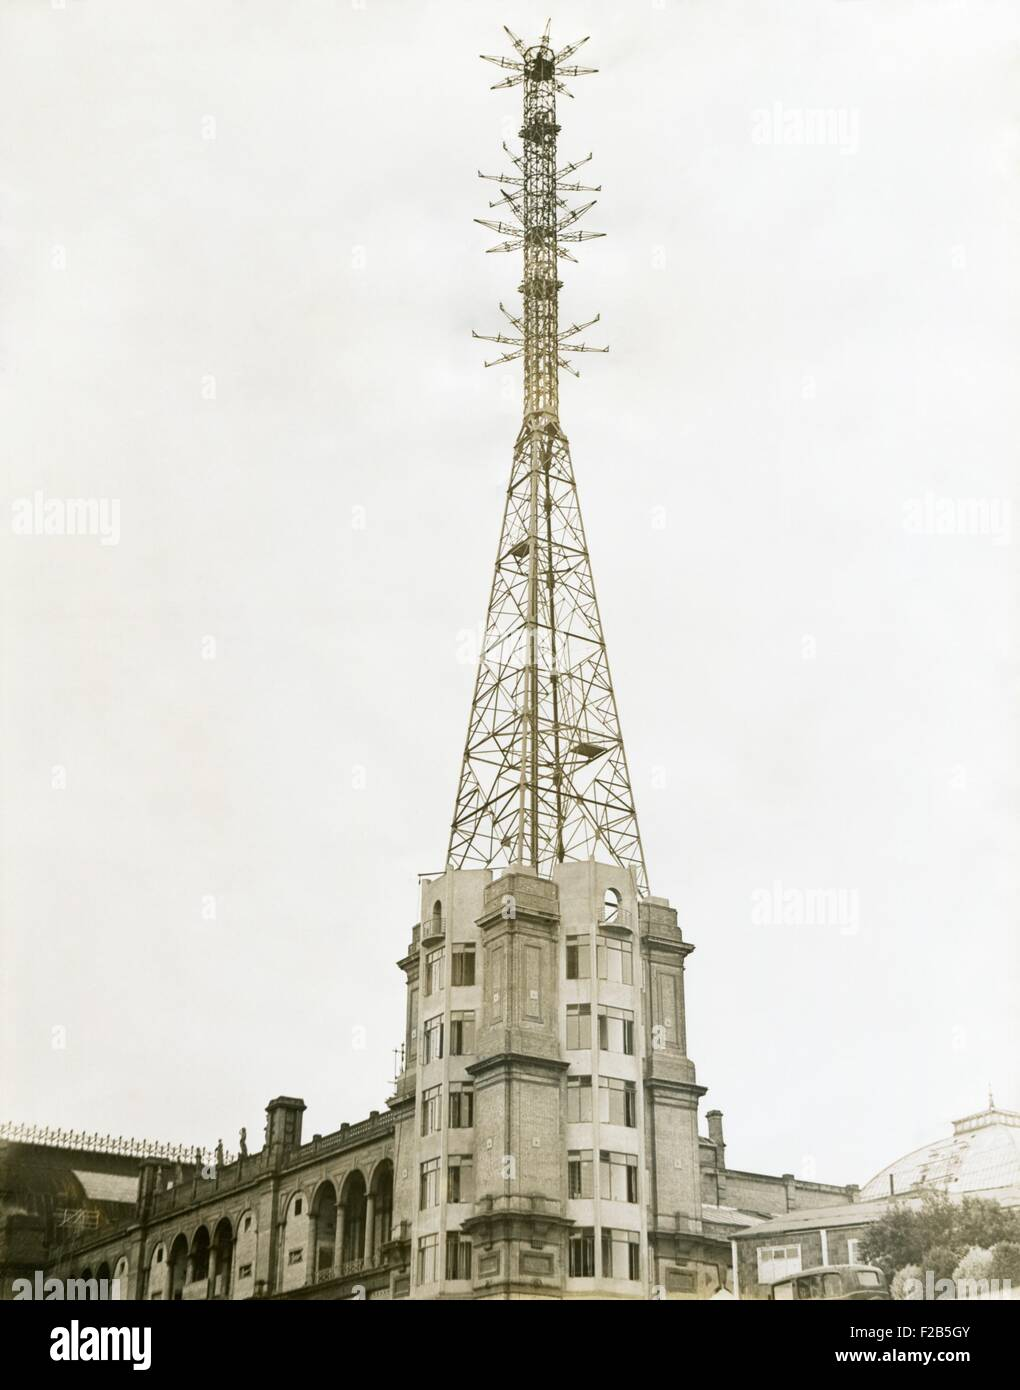 Television tower at Alexandra Place in London, Aug. 17, 1936. The British Broadcasting Corporation (BBC) has television - Stock Image